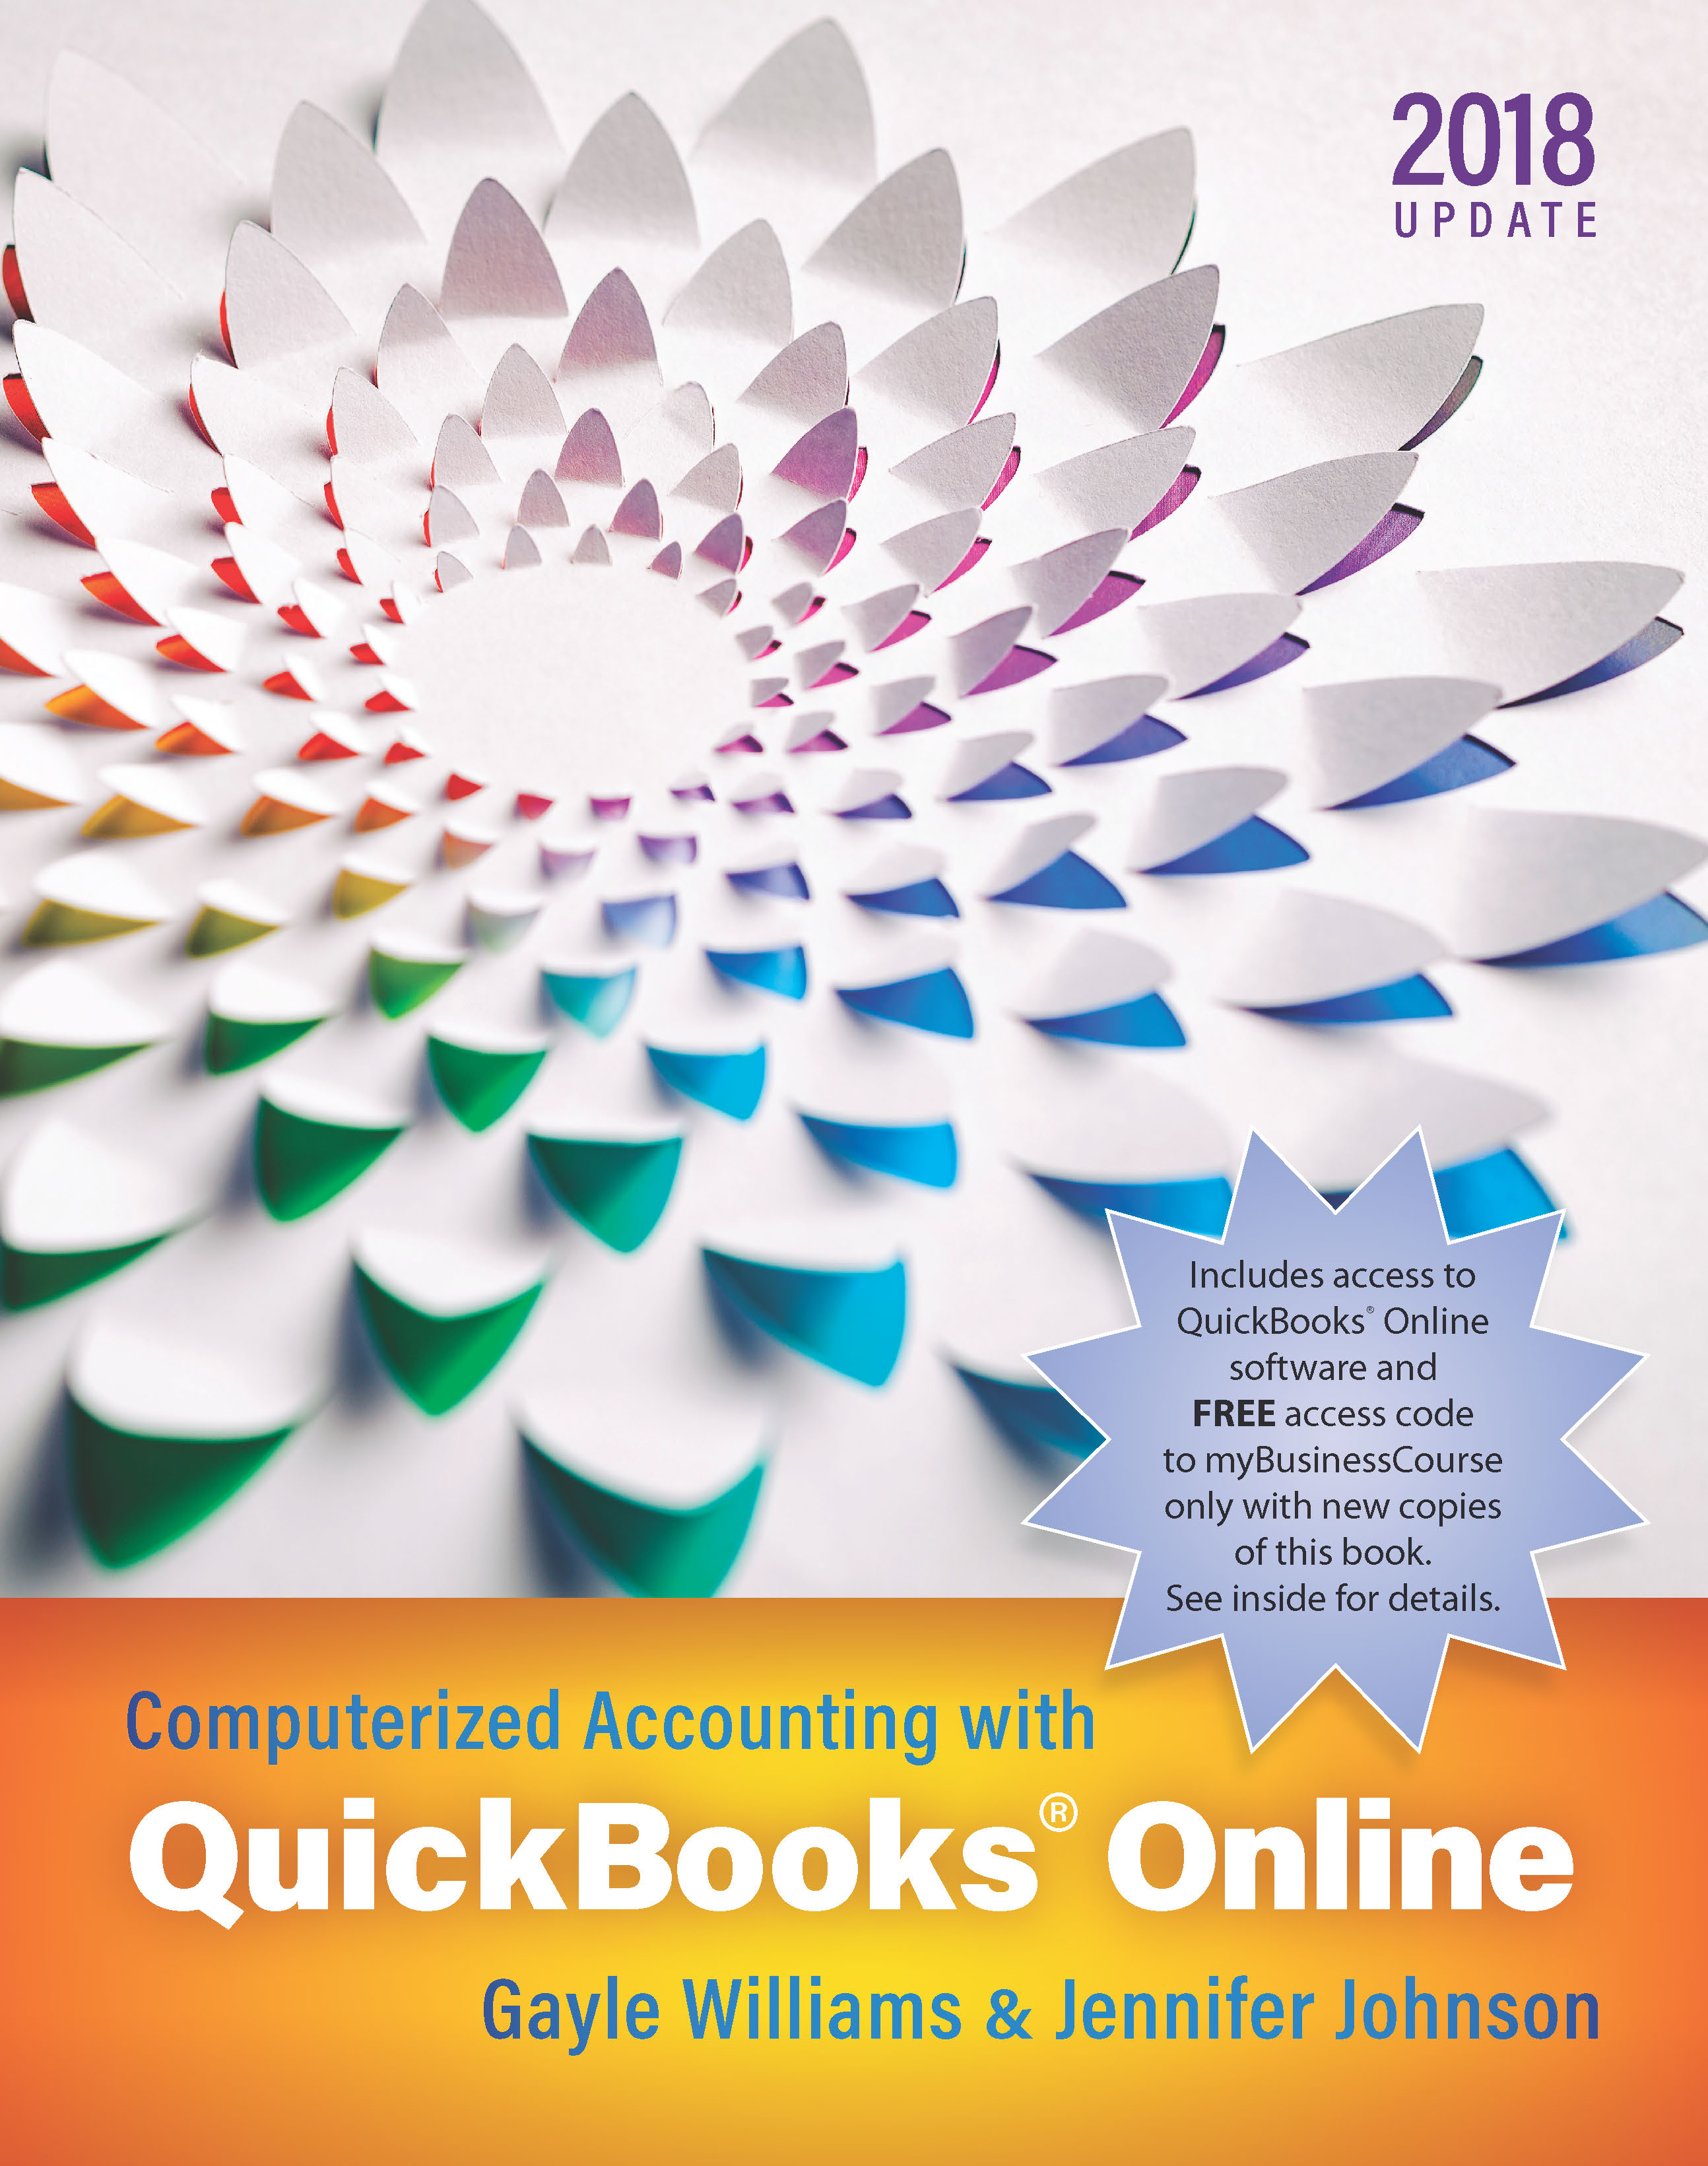 Computerized Accounting with QuickBooks Online